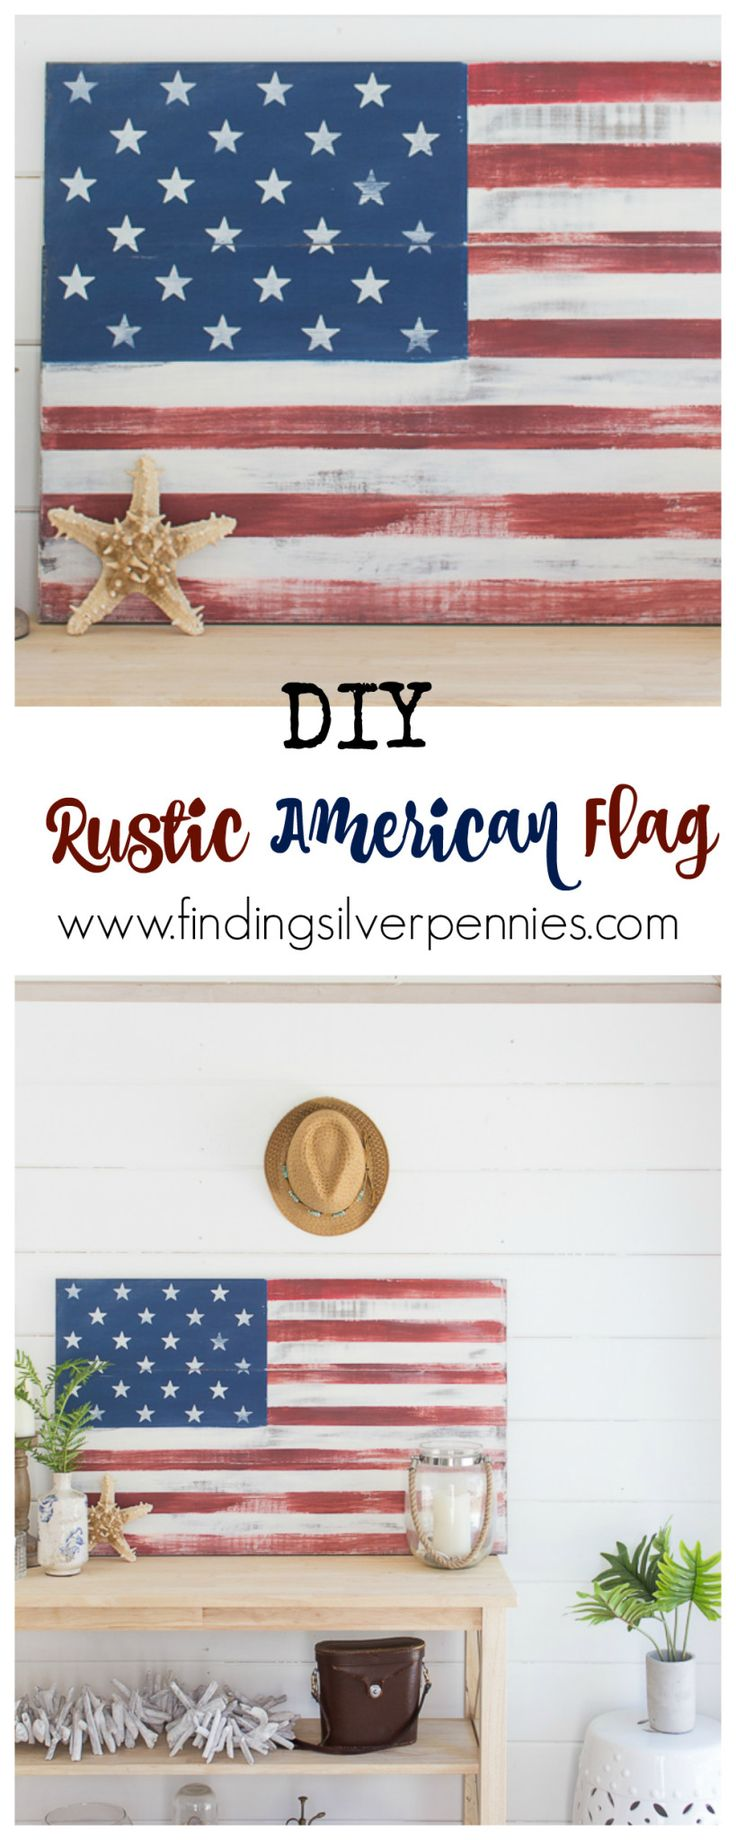 1000 ideas about american flag meaning on pinterest the flag my rock and we the people. Black Bedroom Furniture Sets. Home Design Ideas